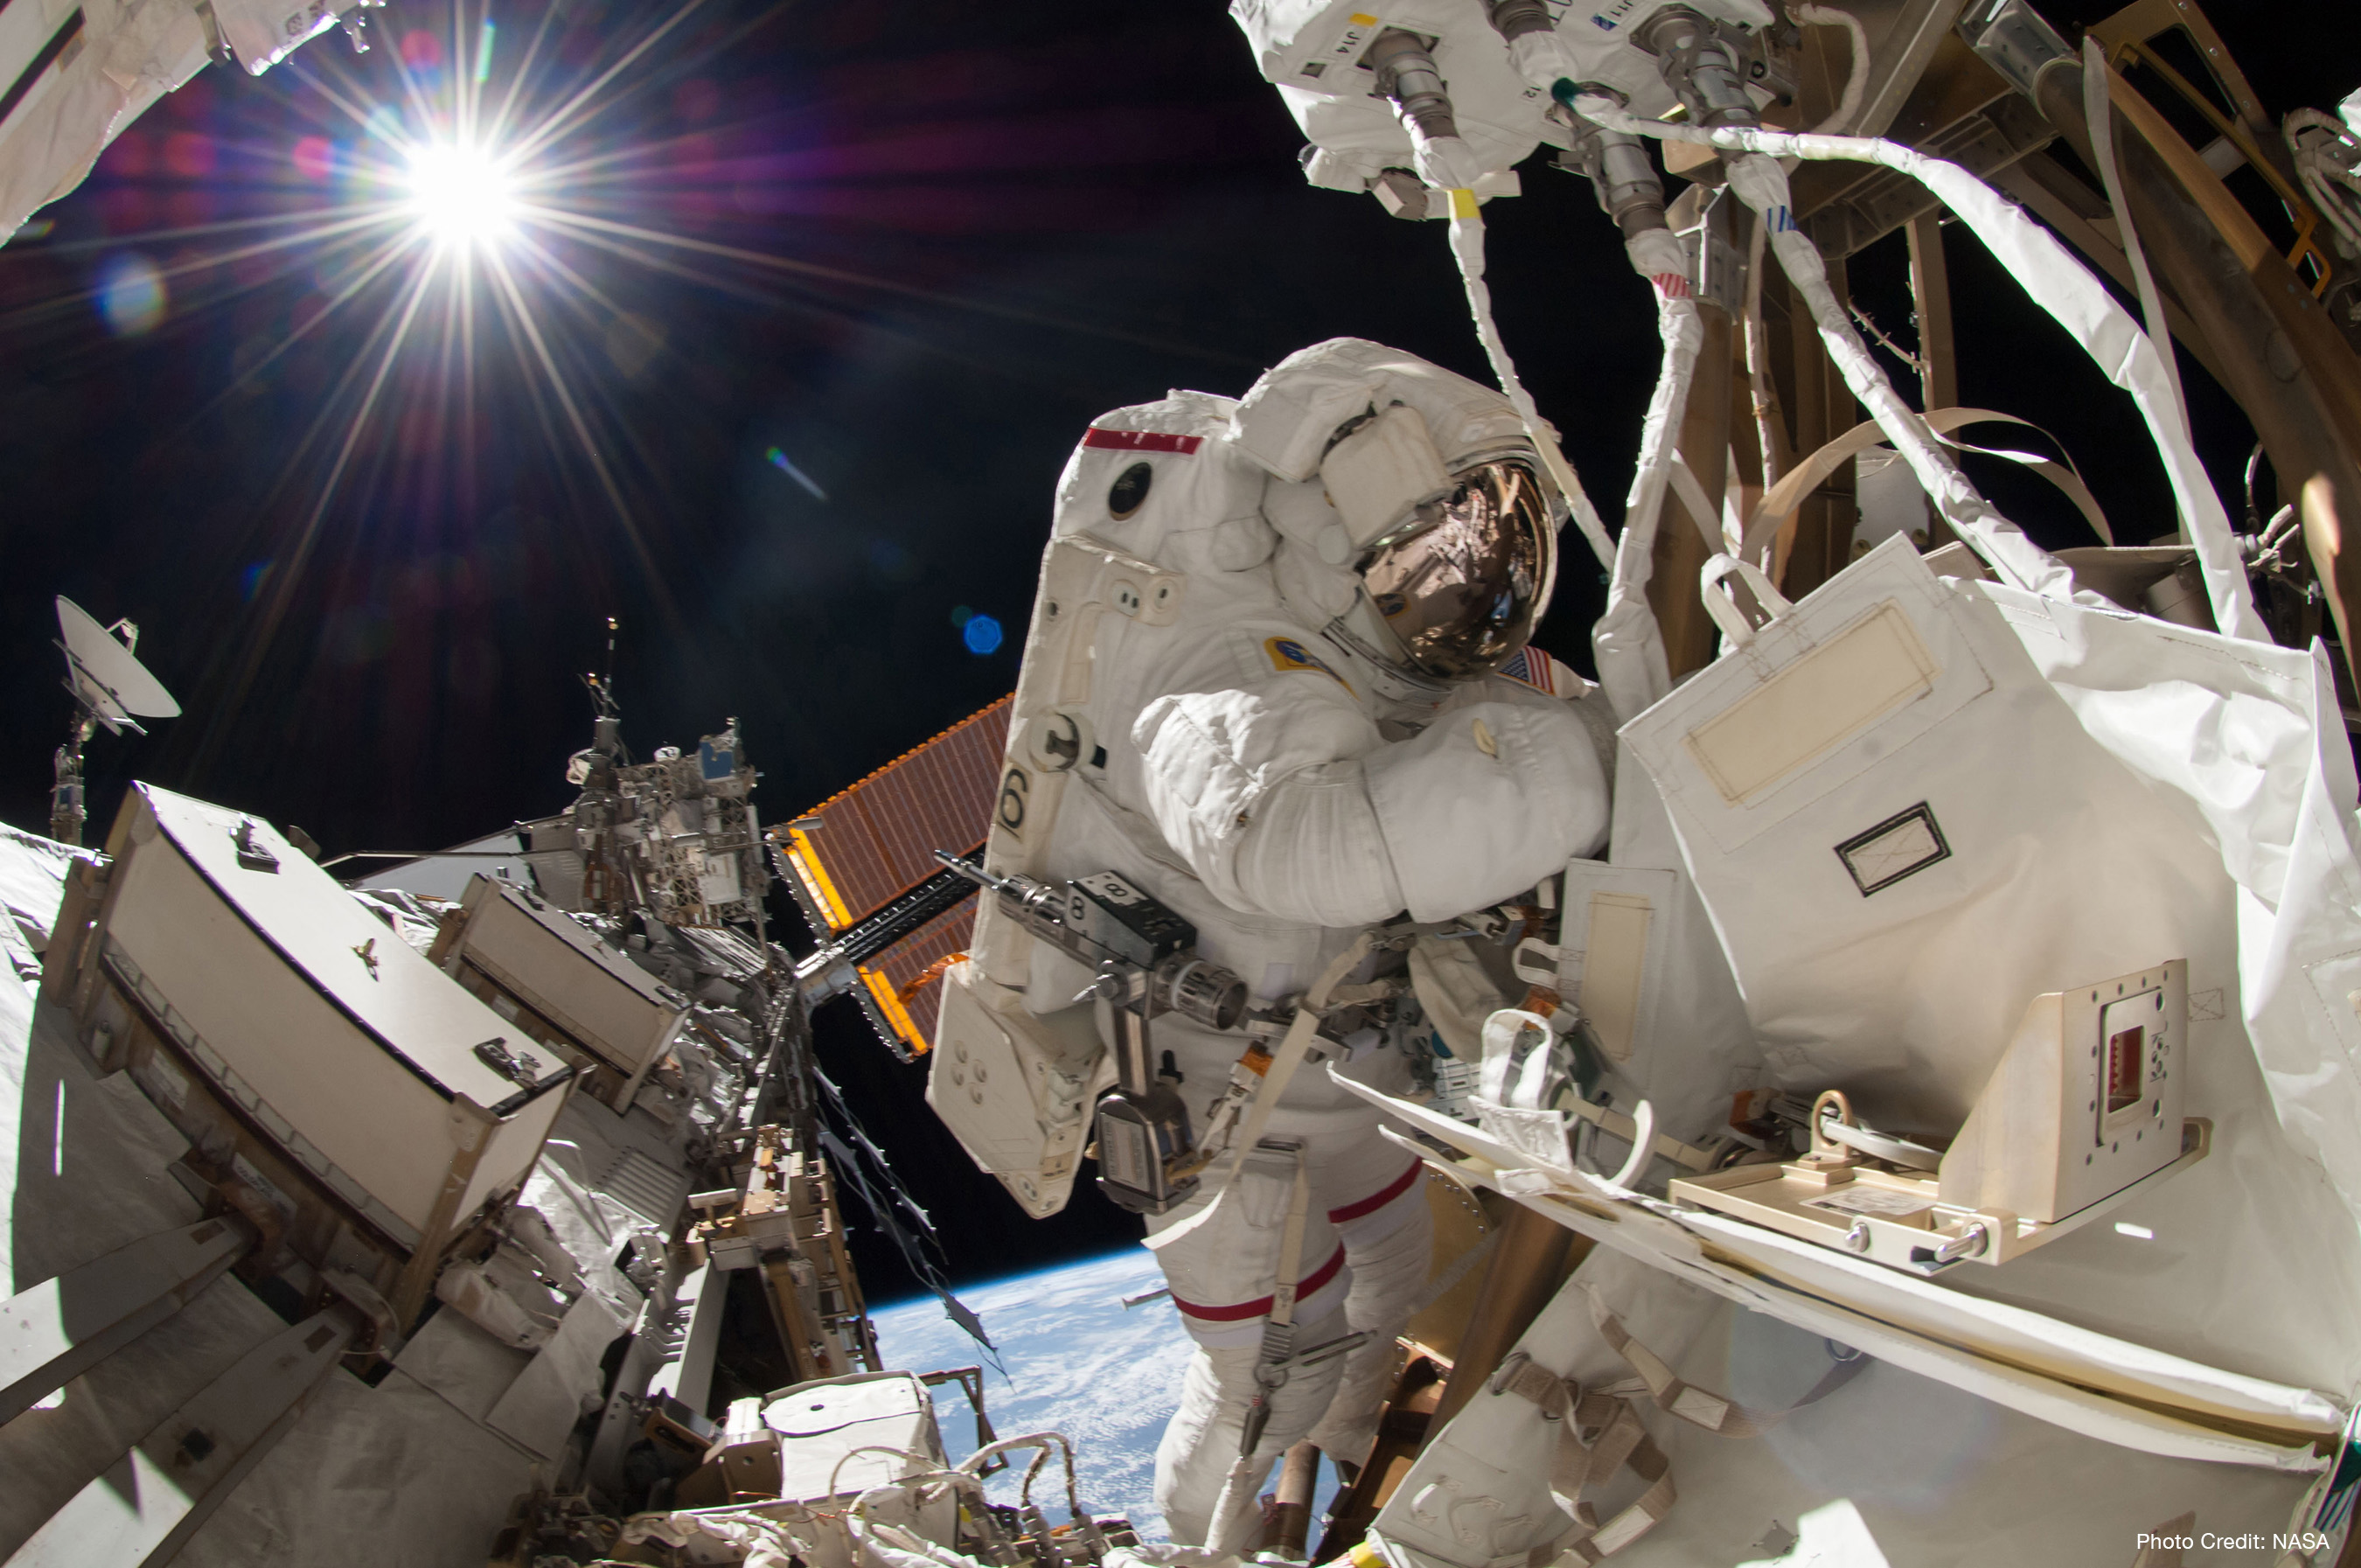 NASA astronaut Reid Wiseman, Expedition 41 flight engineer, participates in a spacewalk, performing maintenance on the International Space Station. Photo credit: NASA.